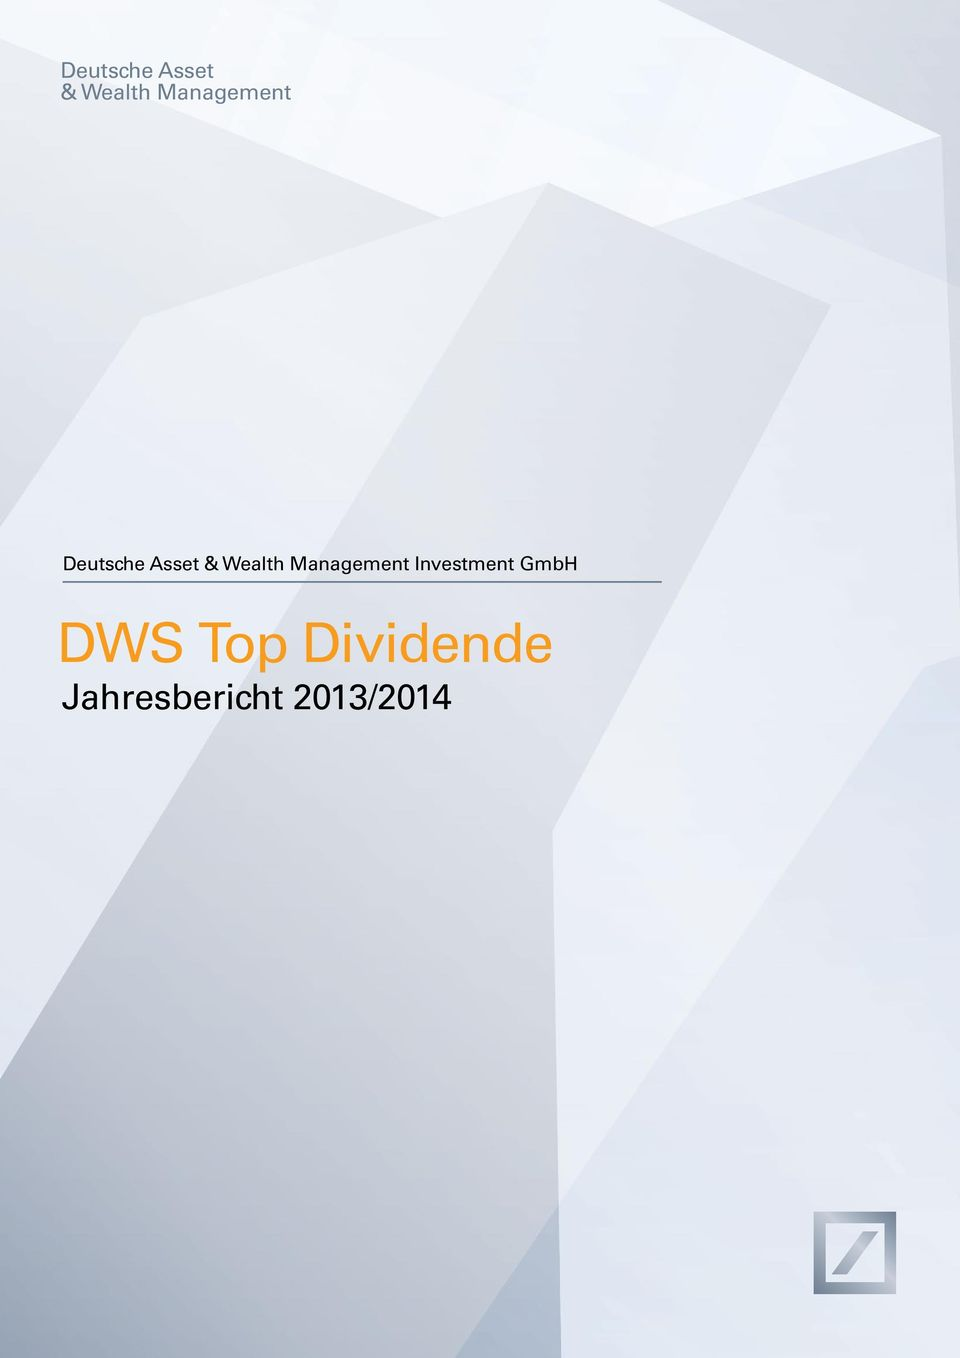 Investment GmbH DWS Top